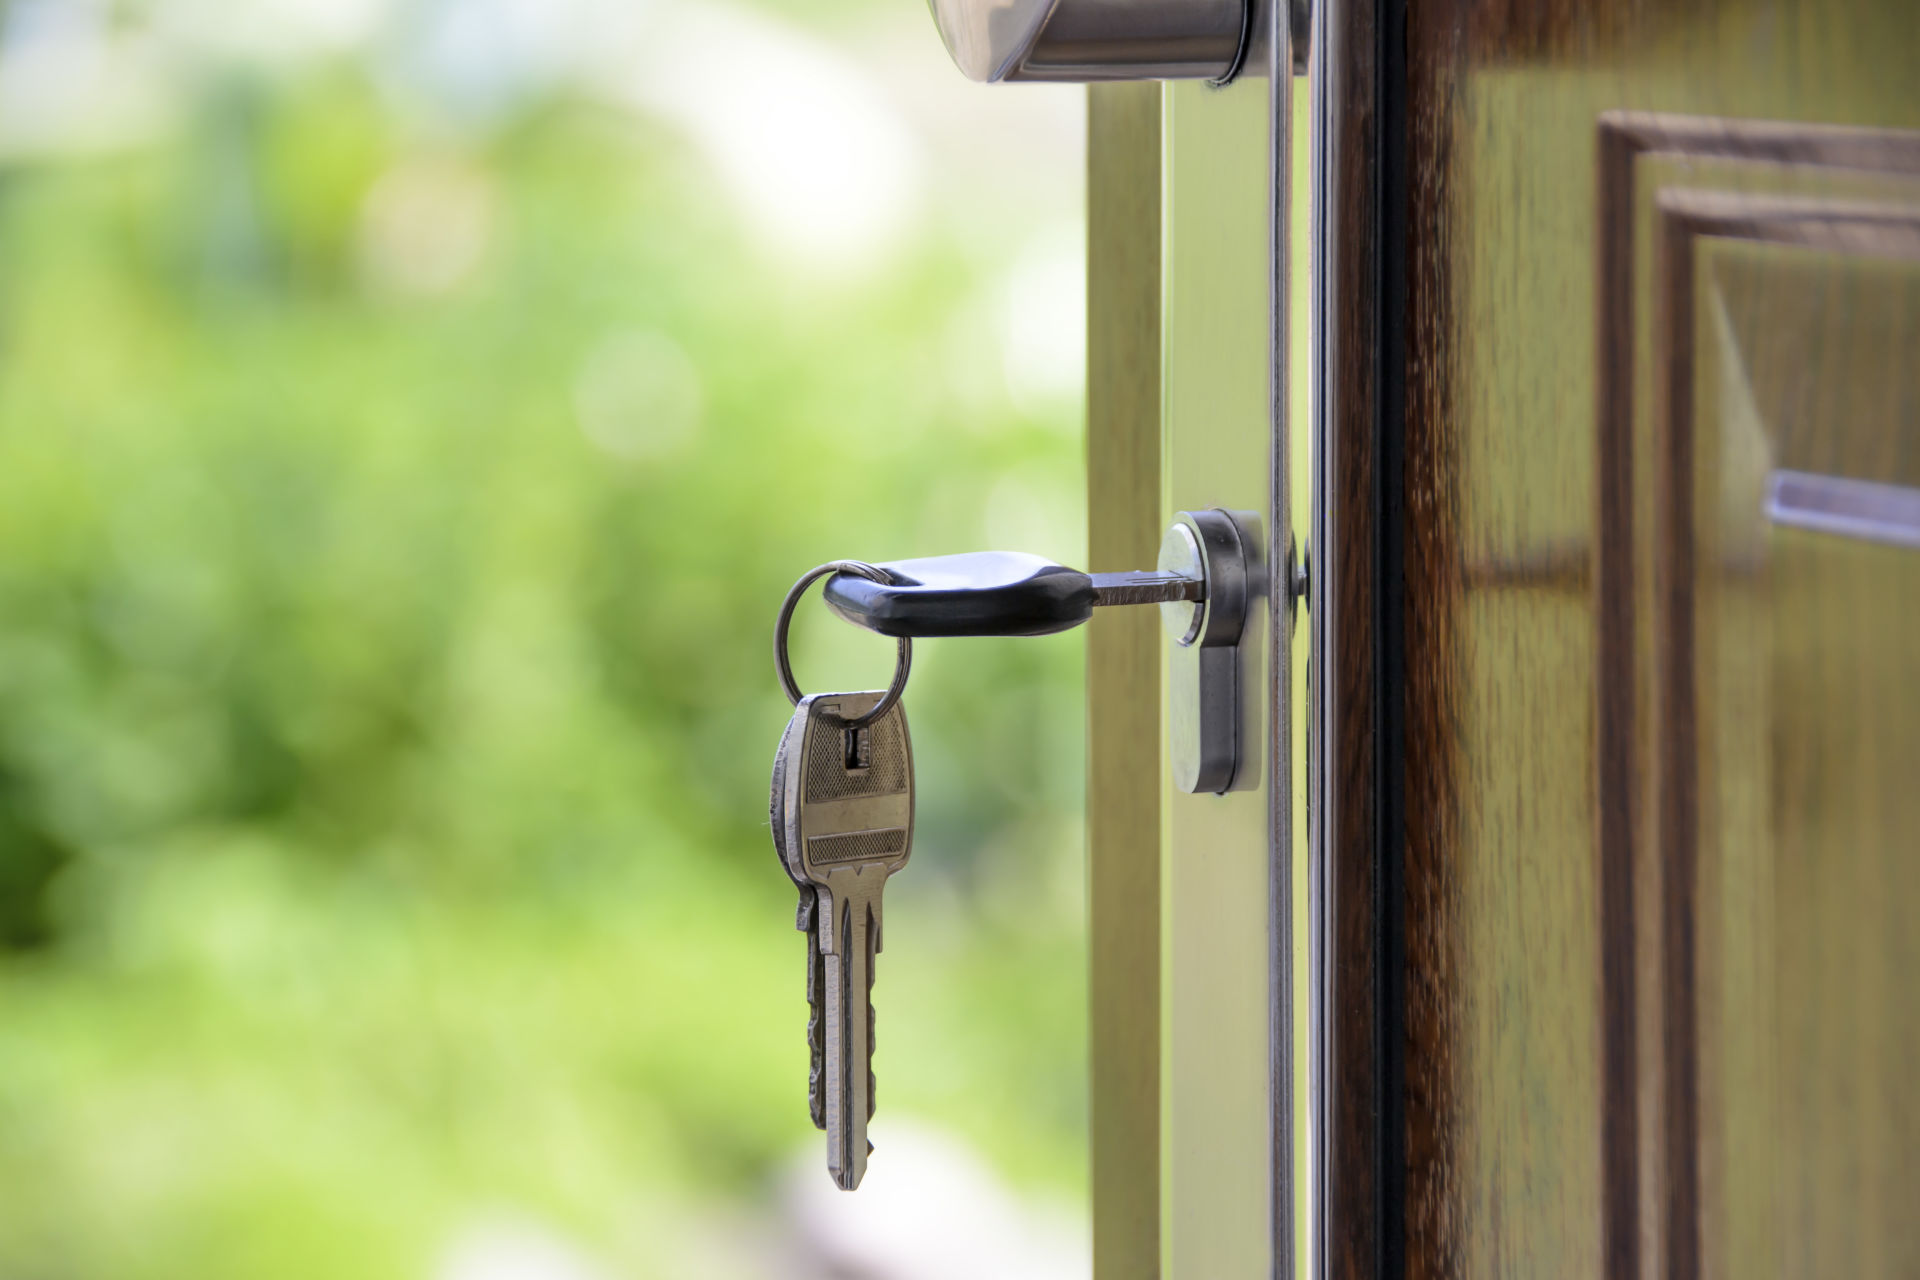 Keeping Your Home Safe From Burglars While You're on Vacation